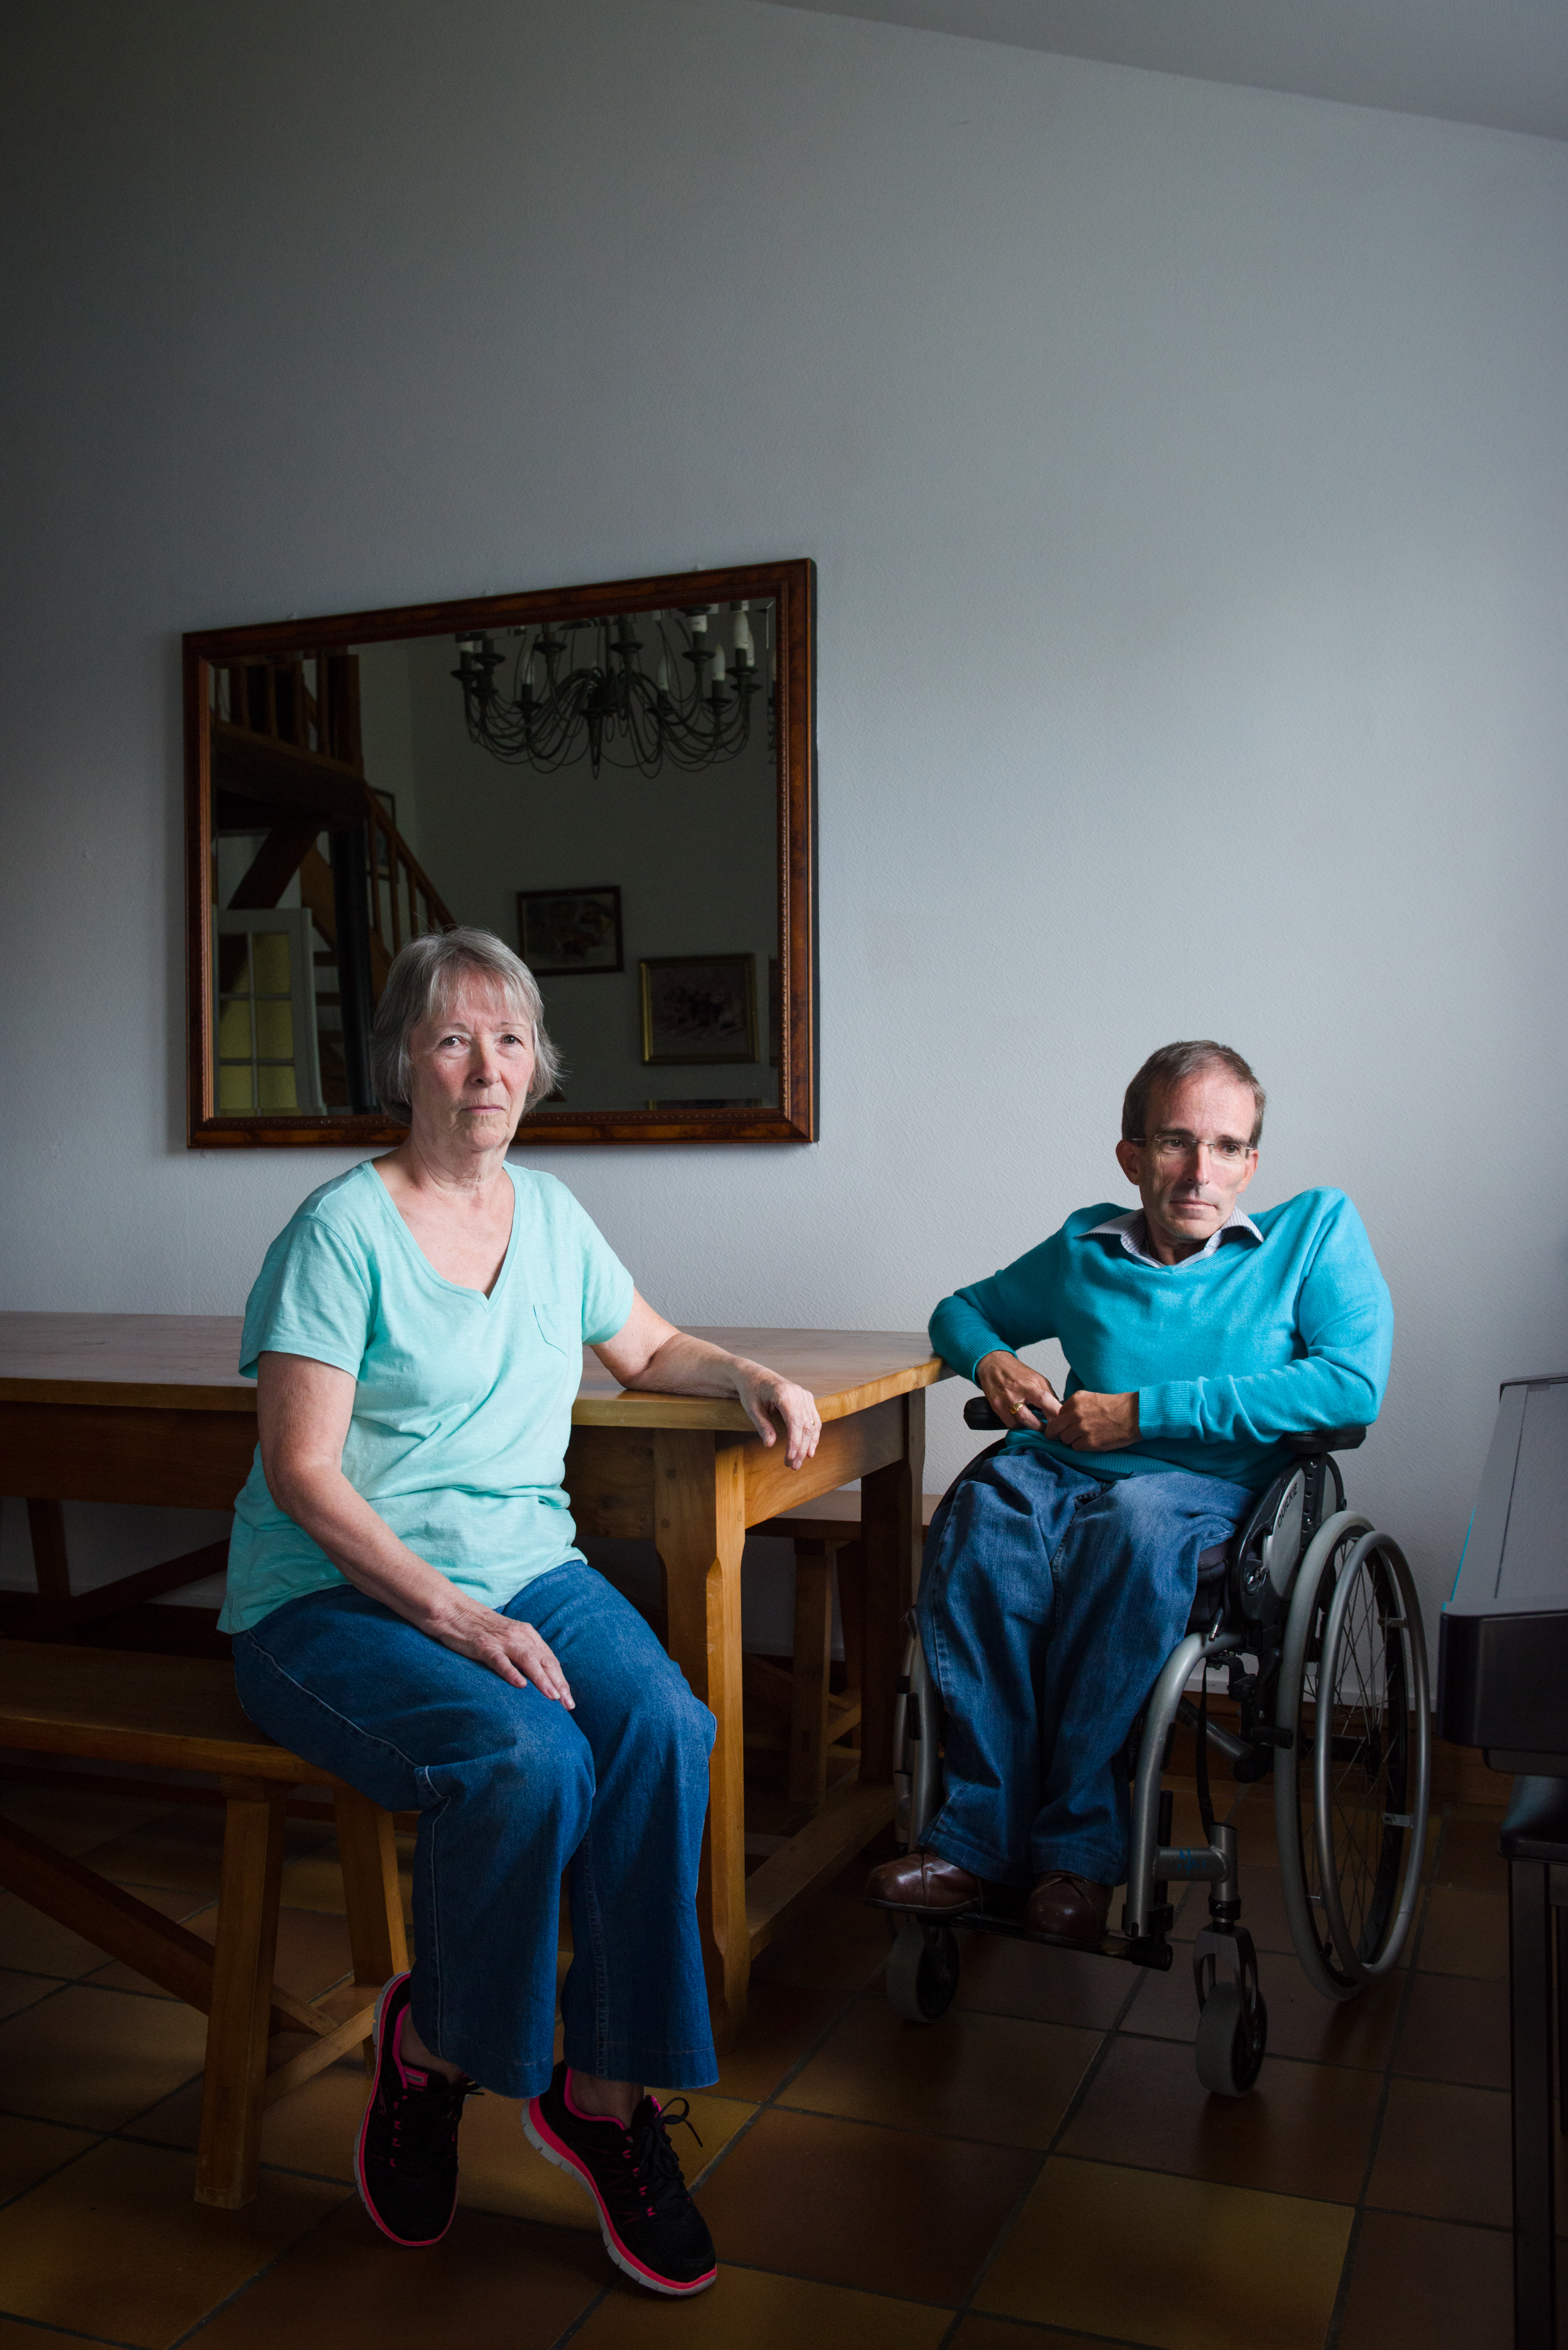 """Ian Firth, 52, with his mother and caregiver Sheila Firth, 74, in their home in Mauprévoir, France. Ian condition is chronic so his medical care is covered under the French health care system, however with the United Kingdom leaving of the EU the agreements guaranteeing medical care could change or disappear. """"We are concerned about what they are going to do, particularly about the health care. If we lose the health care then we'll have no alternative than to go back to England and that's the last thing we want to do."""""""